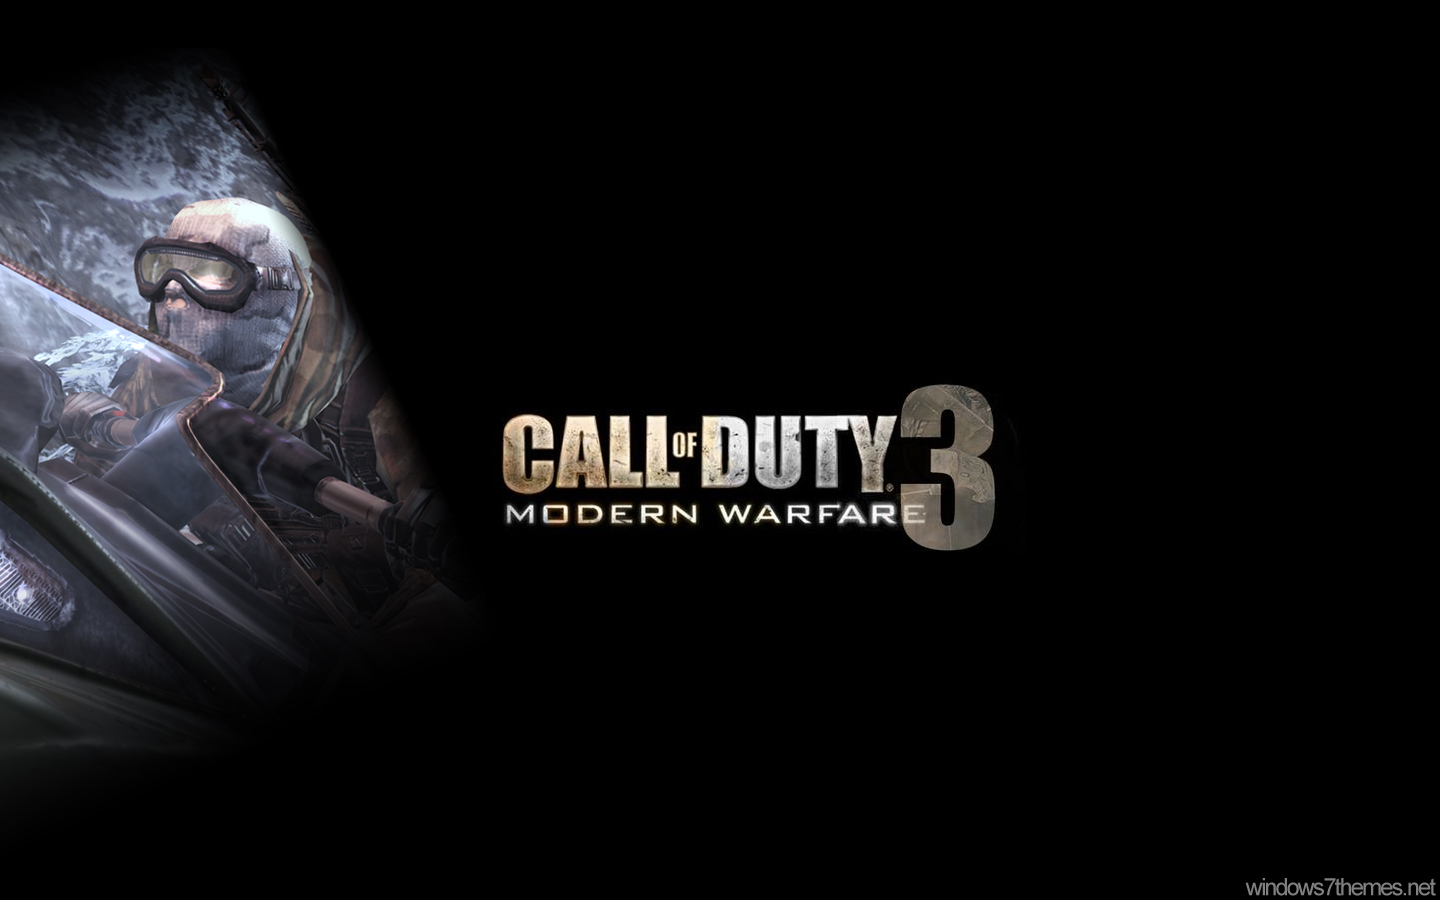 http://4.bp.blogspot.com/-GWGQT_QeEos/Te3vQm88ukI/AAAAAAAAB7g/Vp7z6Qf3GM4/s1600/call-of-duty-modern-warfare-3-wallpaper-5-hd.jpg